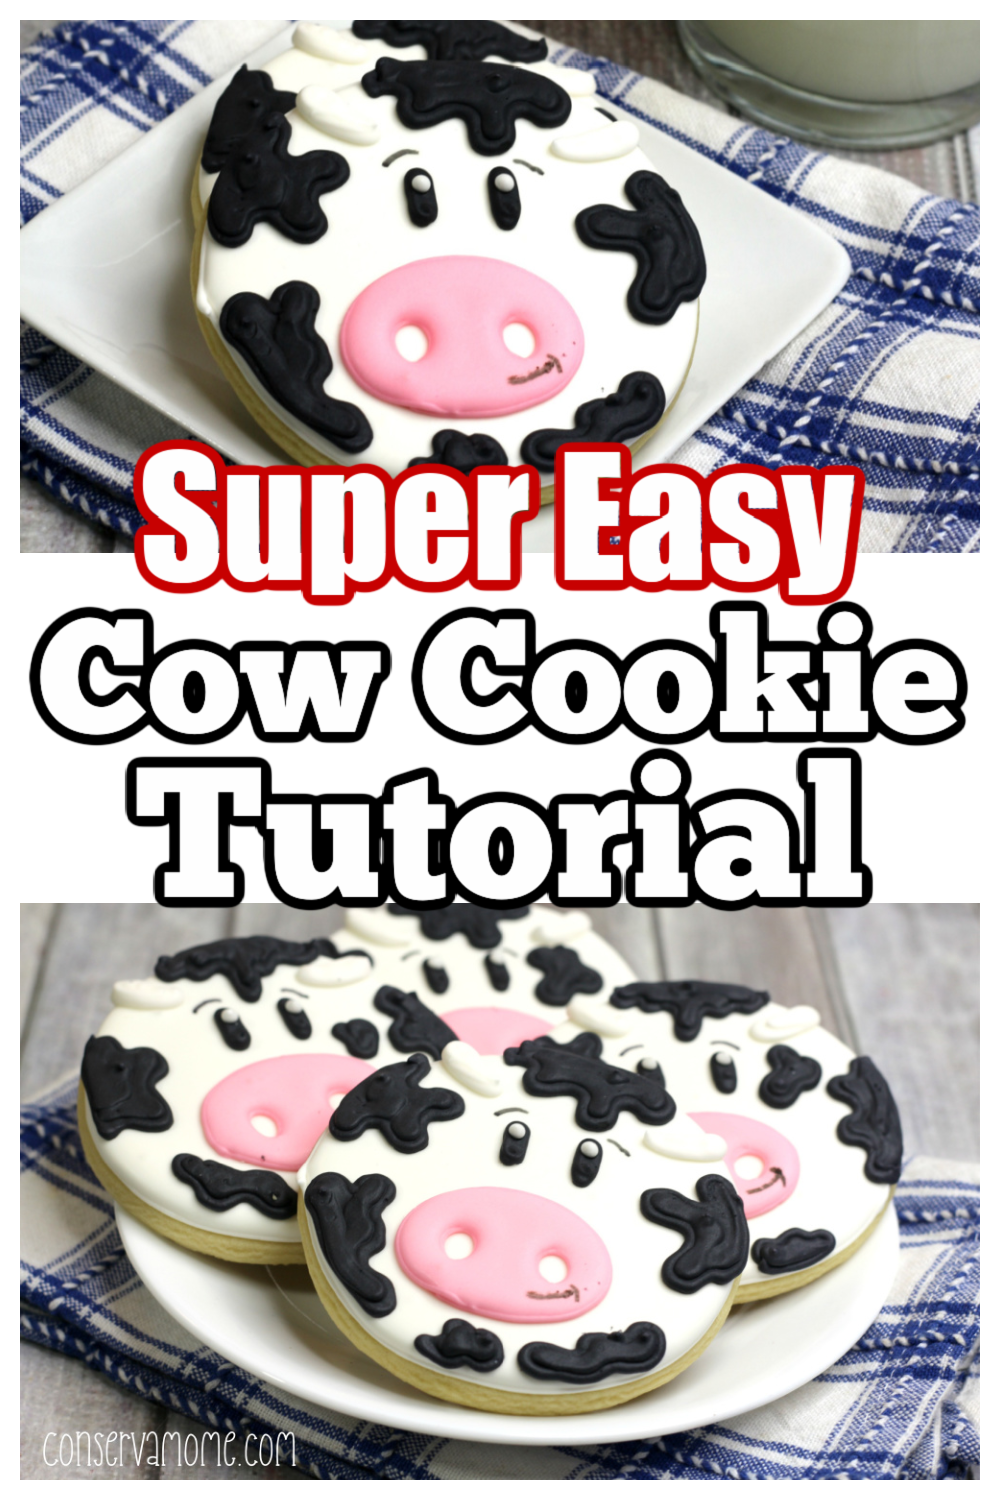 Super Easy Cow cookie tutorial